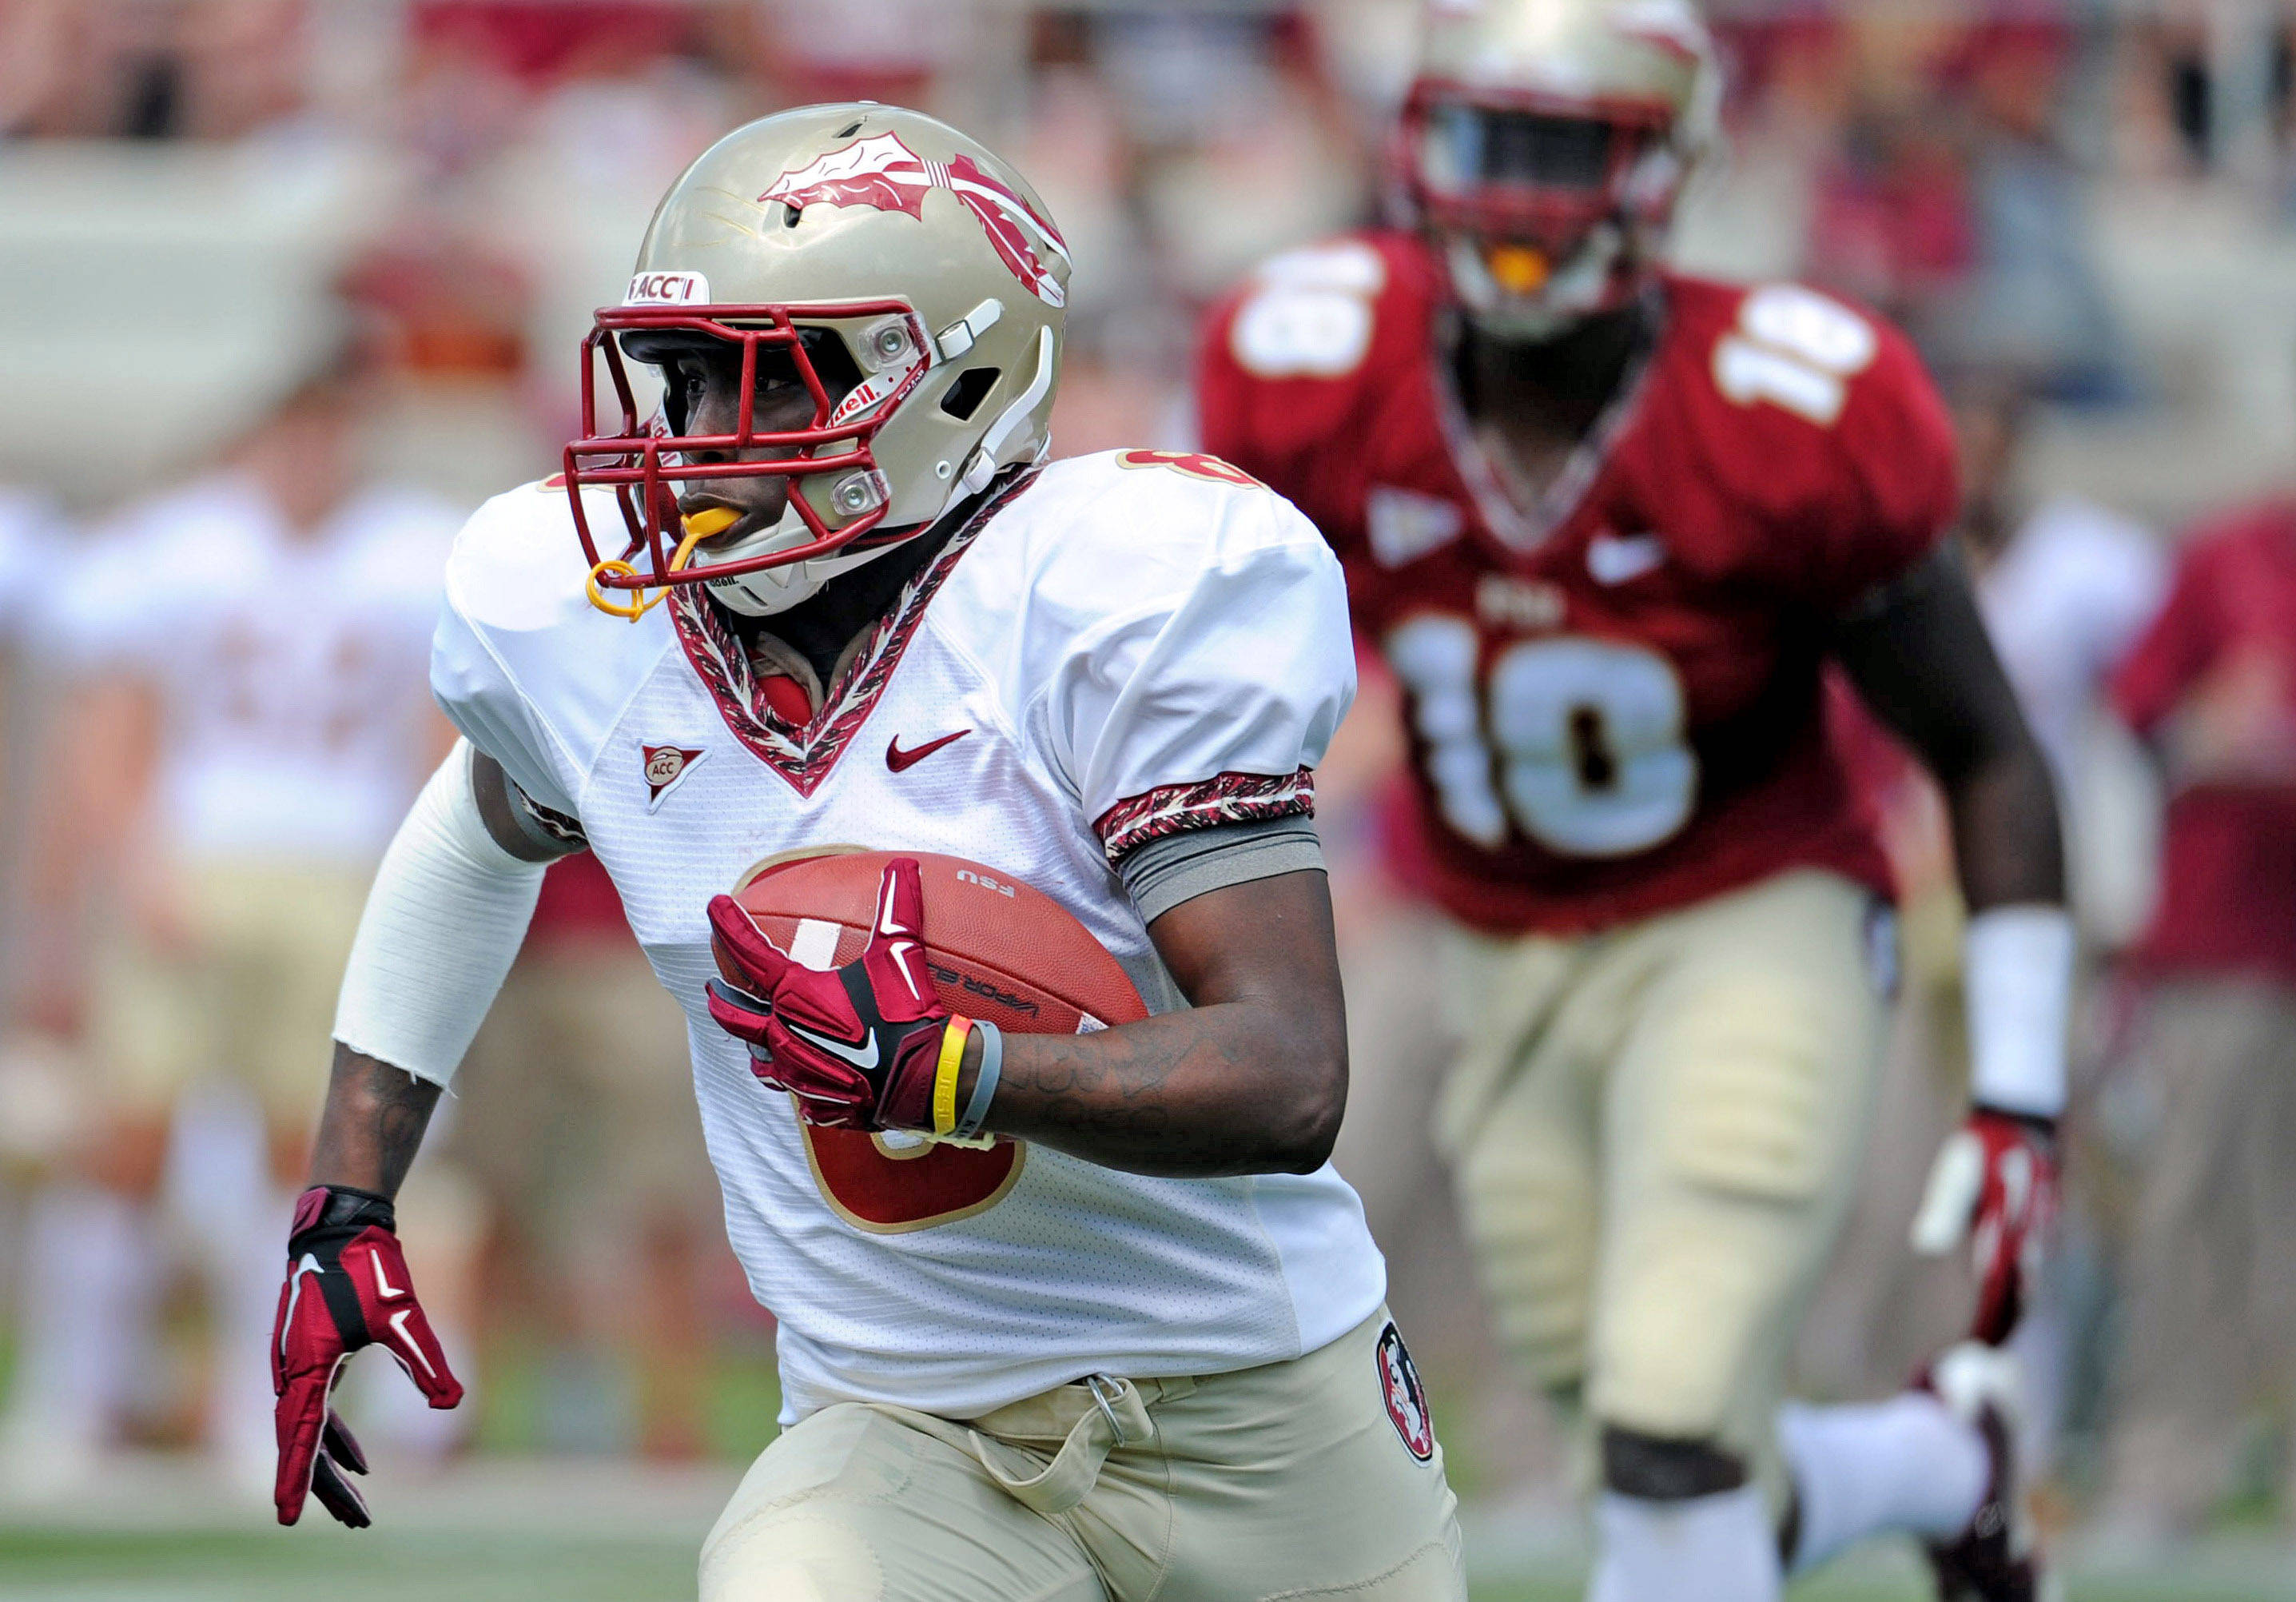 Garnet vs. Gold Spring Game#$%^Apr 12, 2014#$%^(Melina Vastola-USA TODAY Sports)